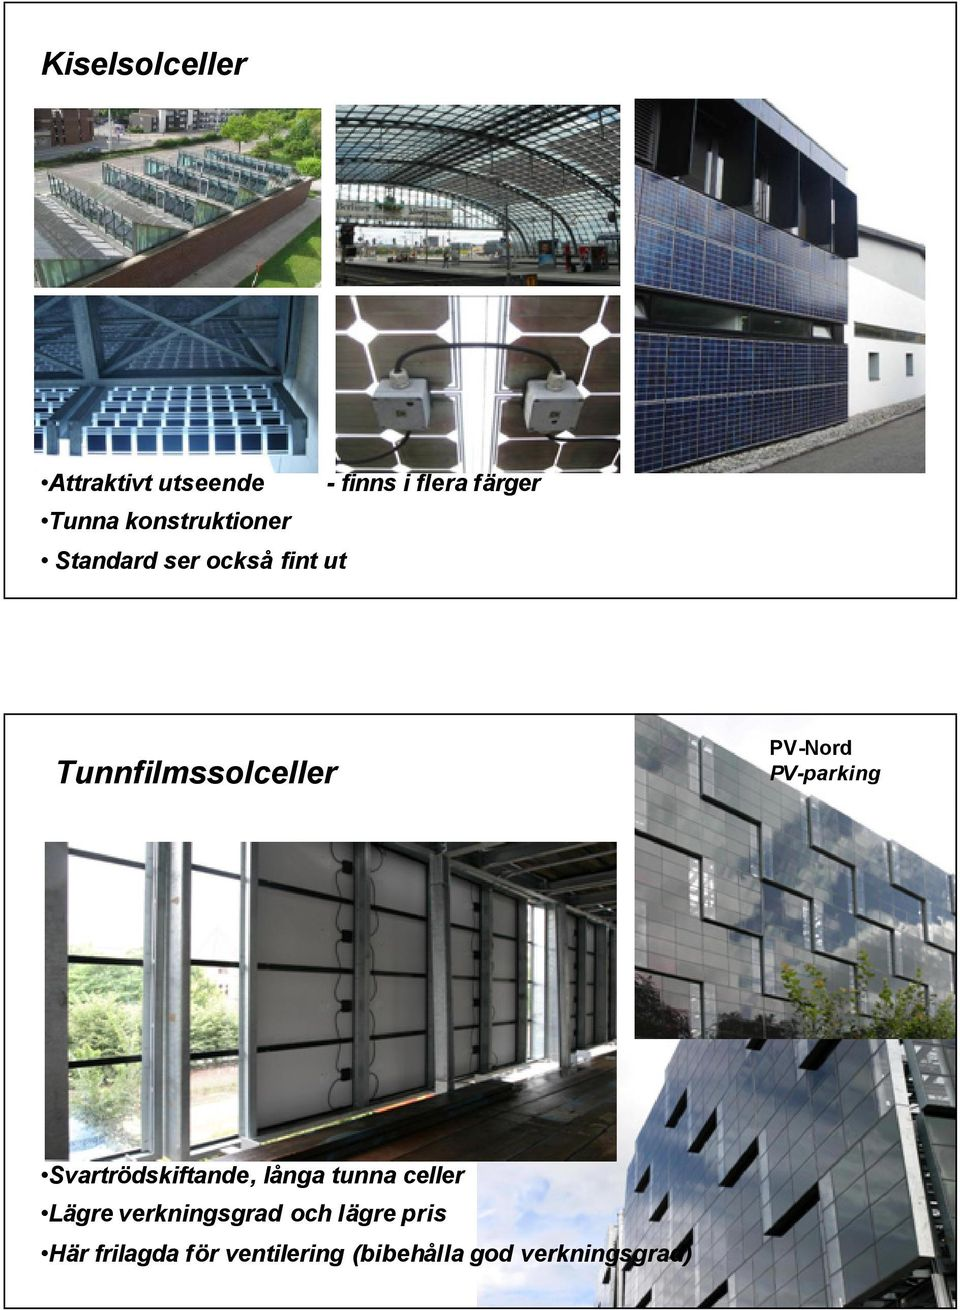 PV-Nord PV-parking Svartrödskiftande, långa tunna celler